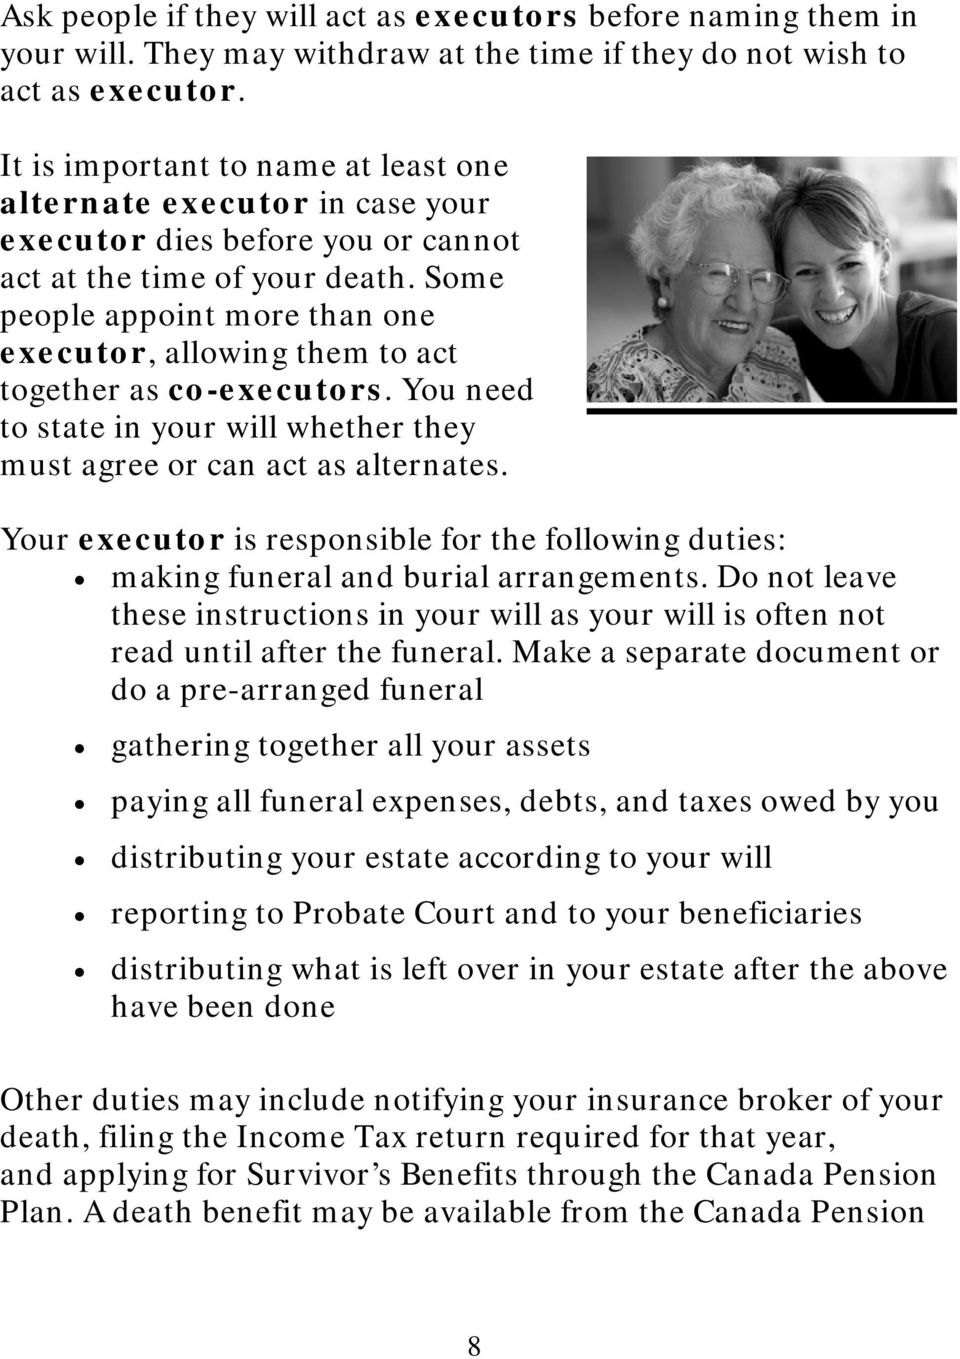 Some people appoint more than one executor, allowing them to act together as co-executors. You need to state in your will whether they must agree or can act as alternates.